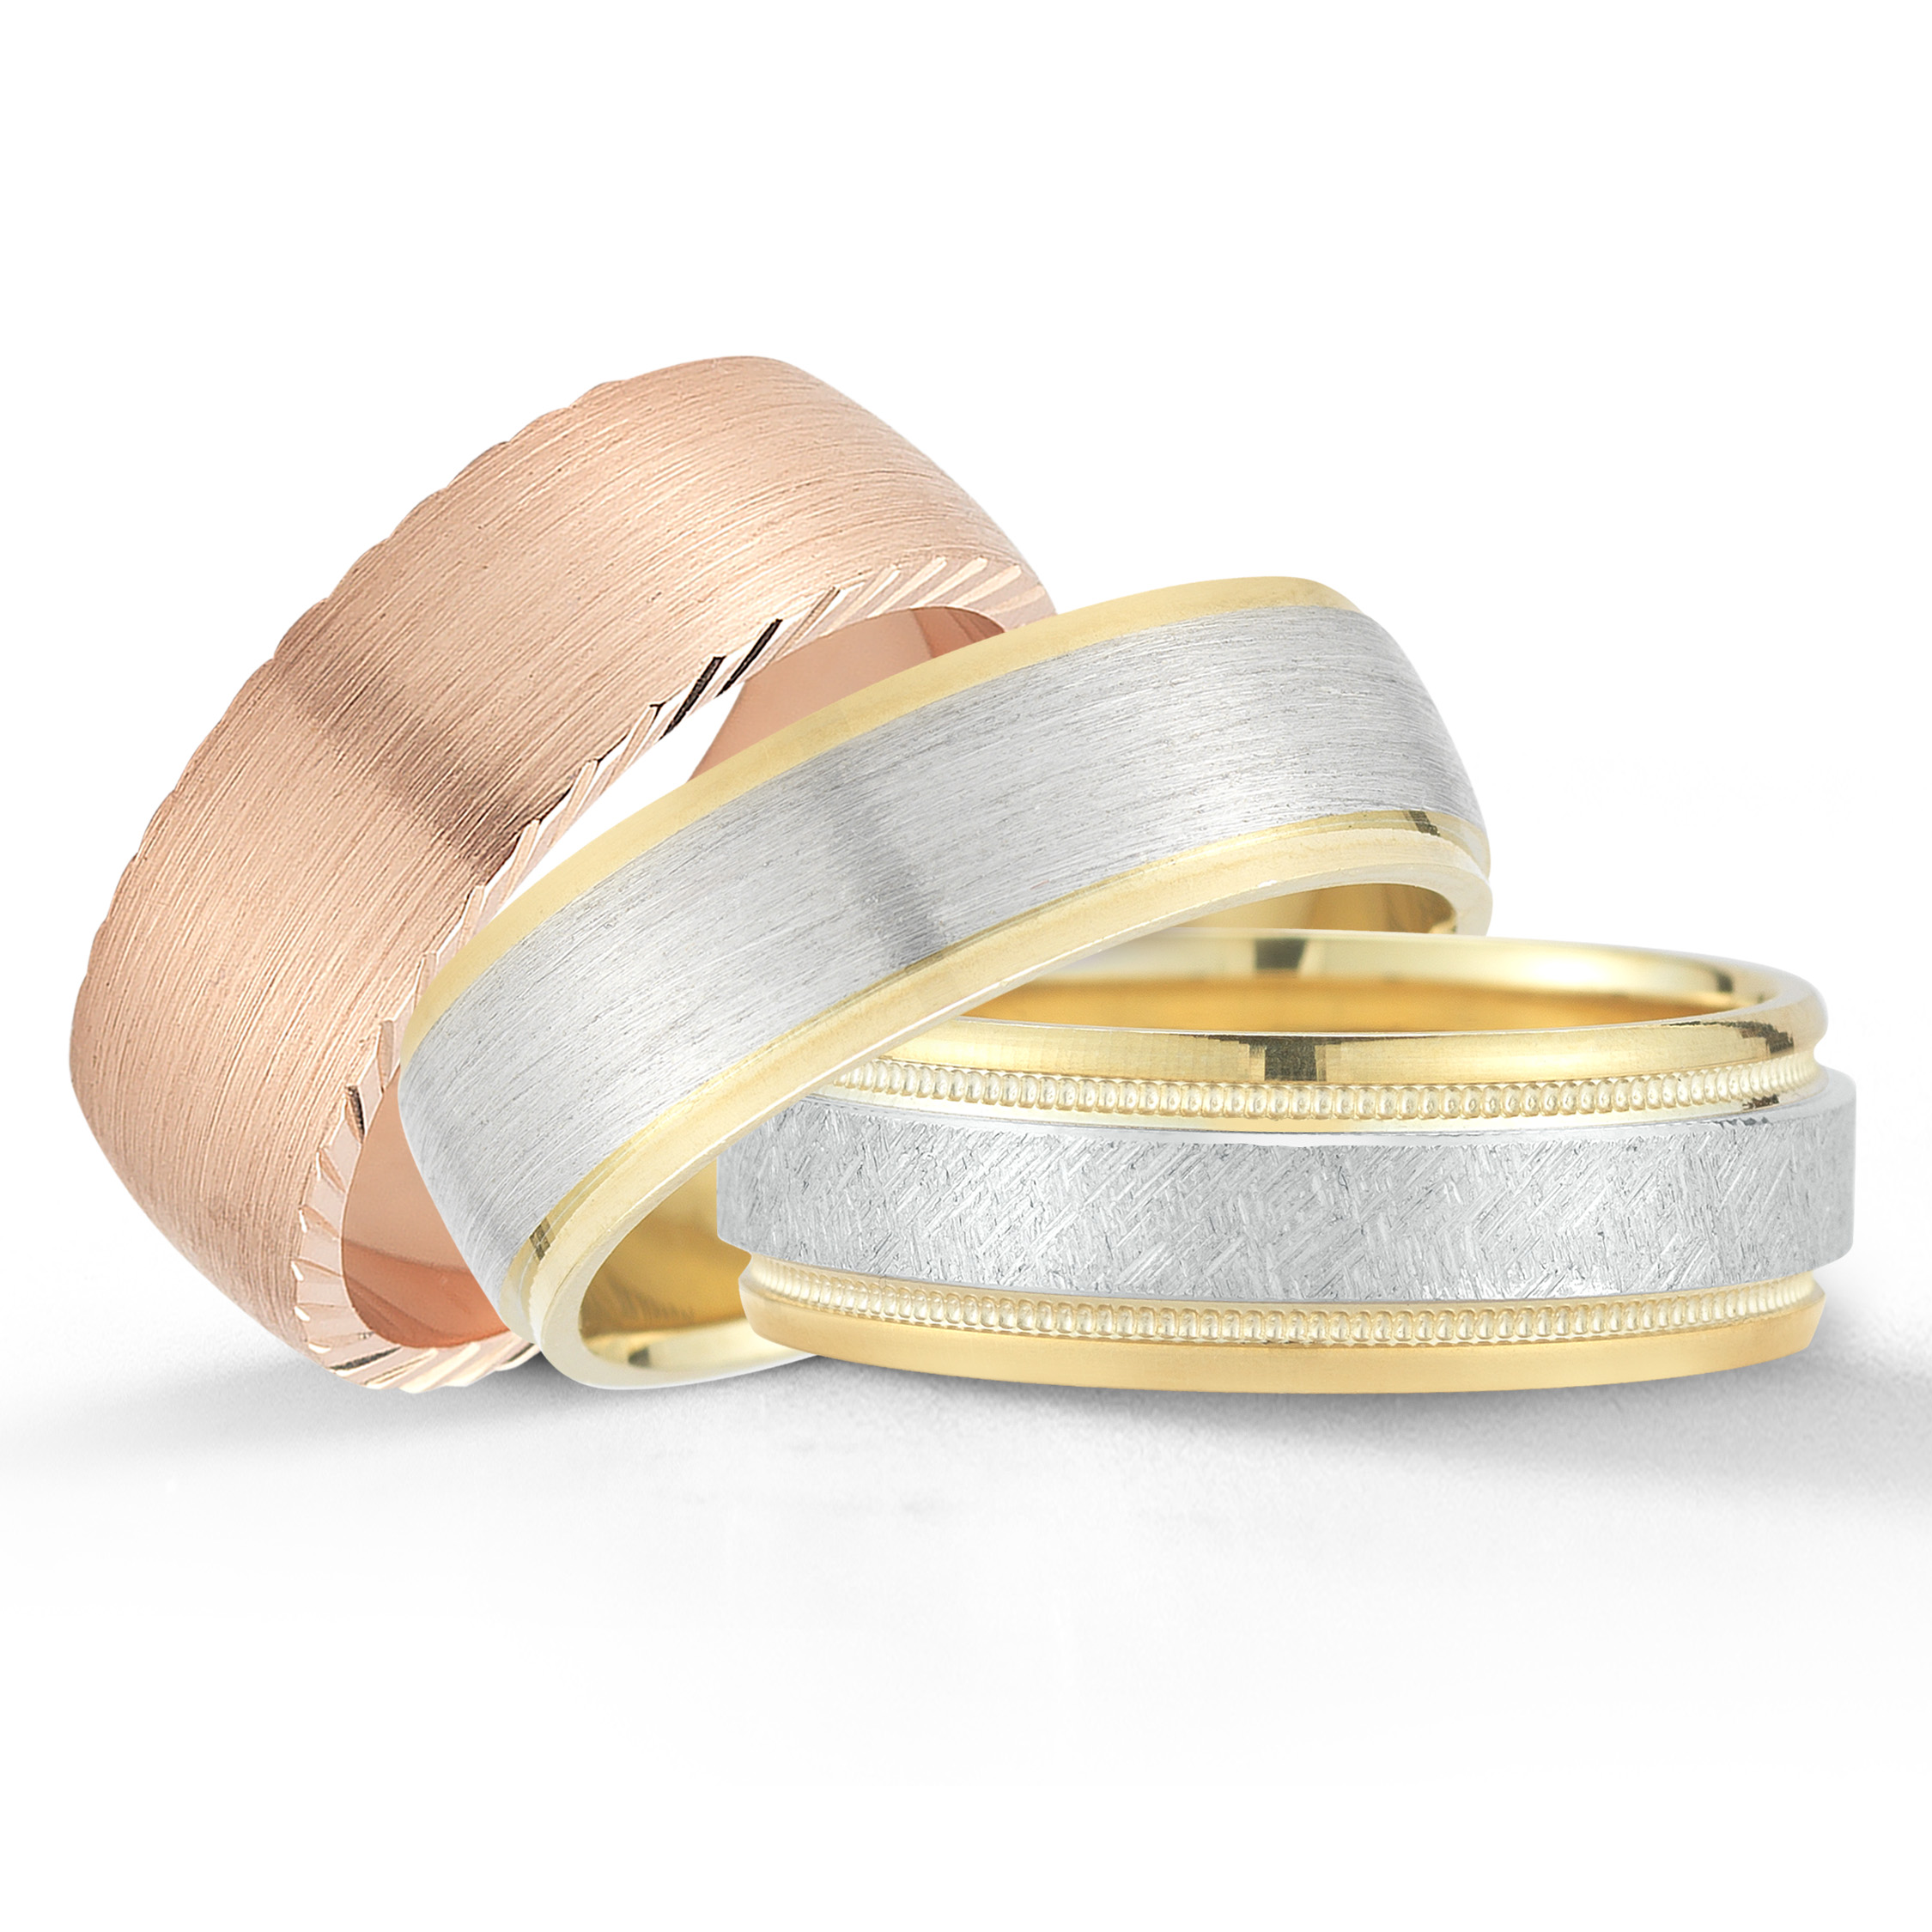 Novell wedding bands available at Diamonds Direct in Oklahoma City.